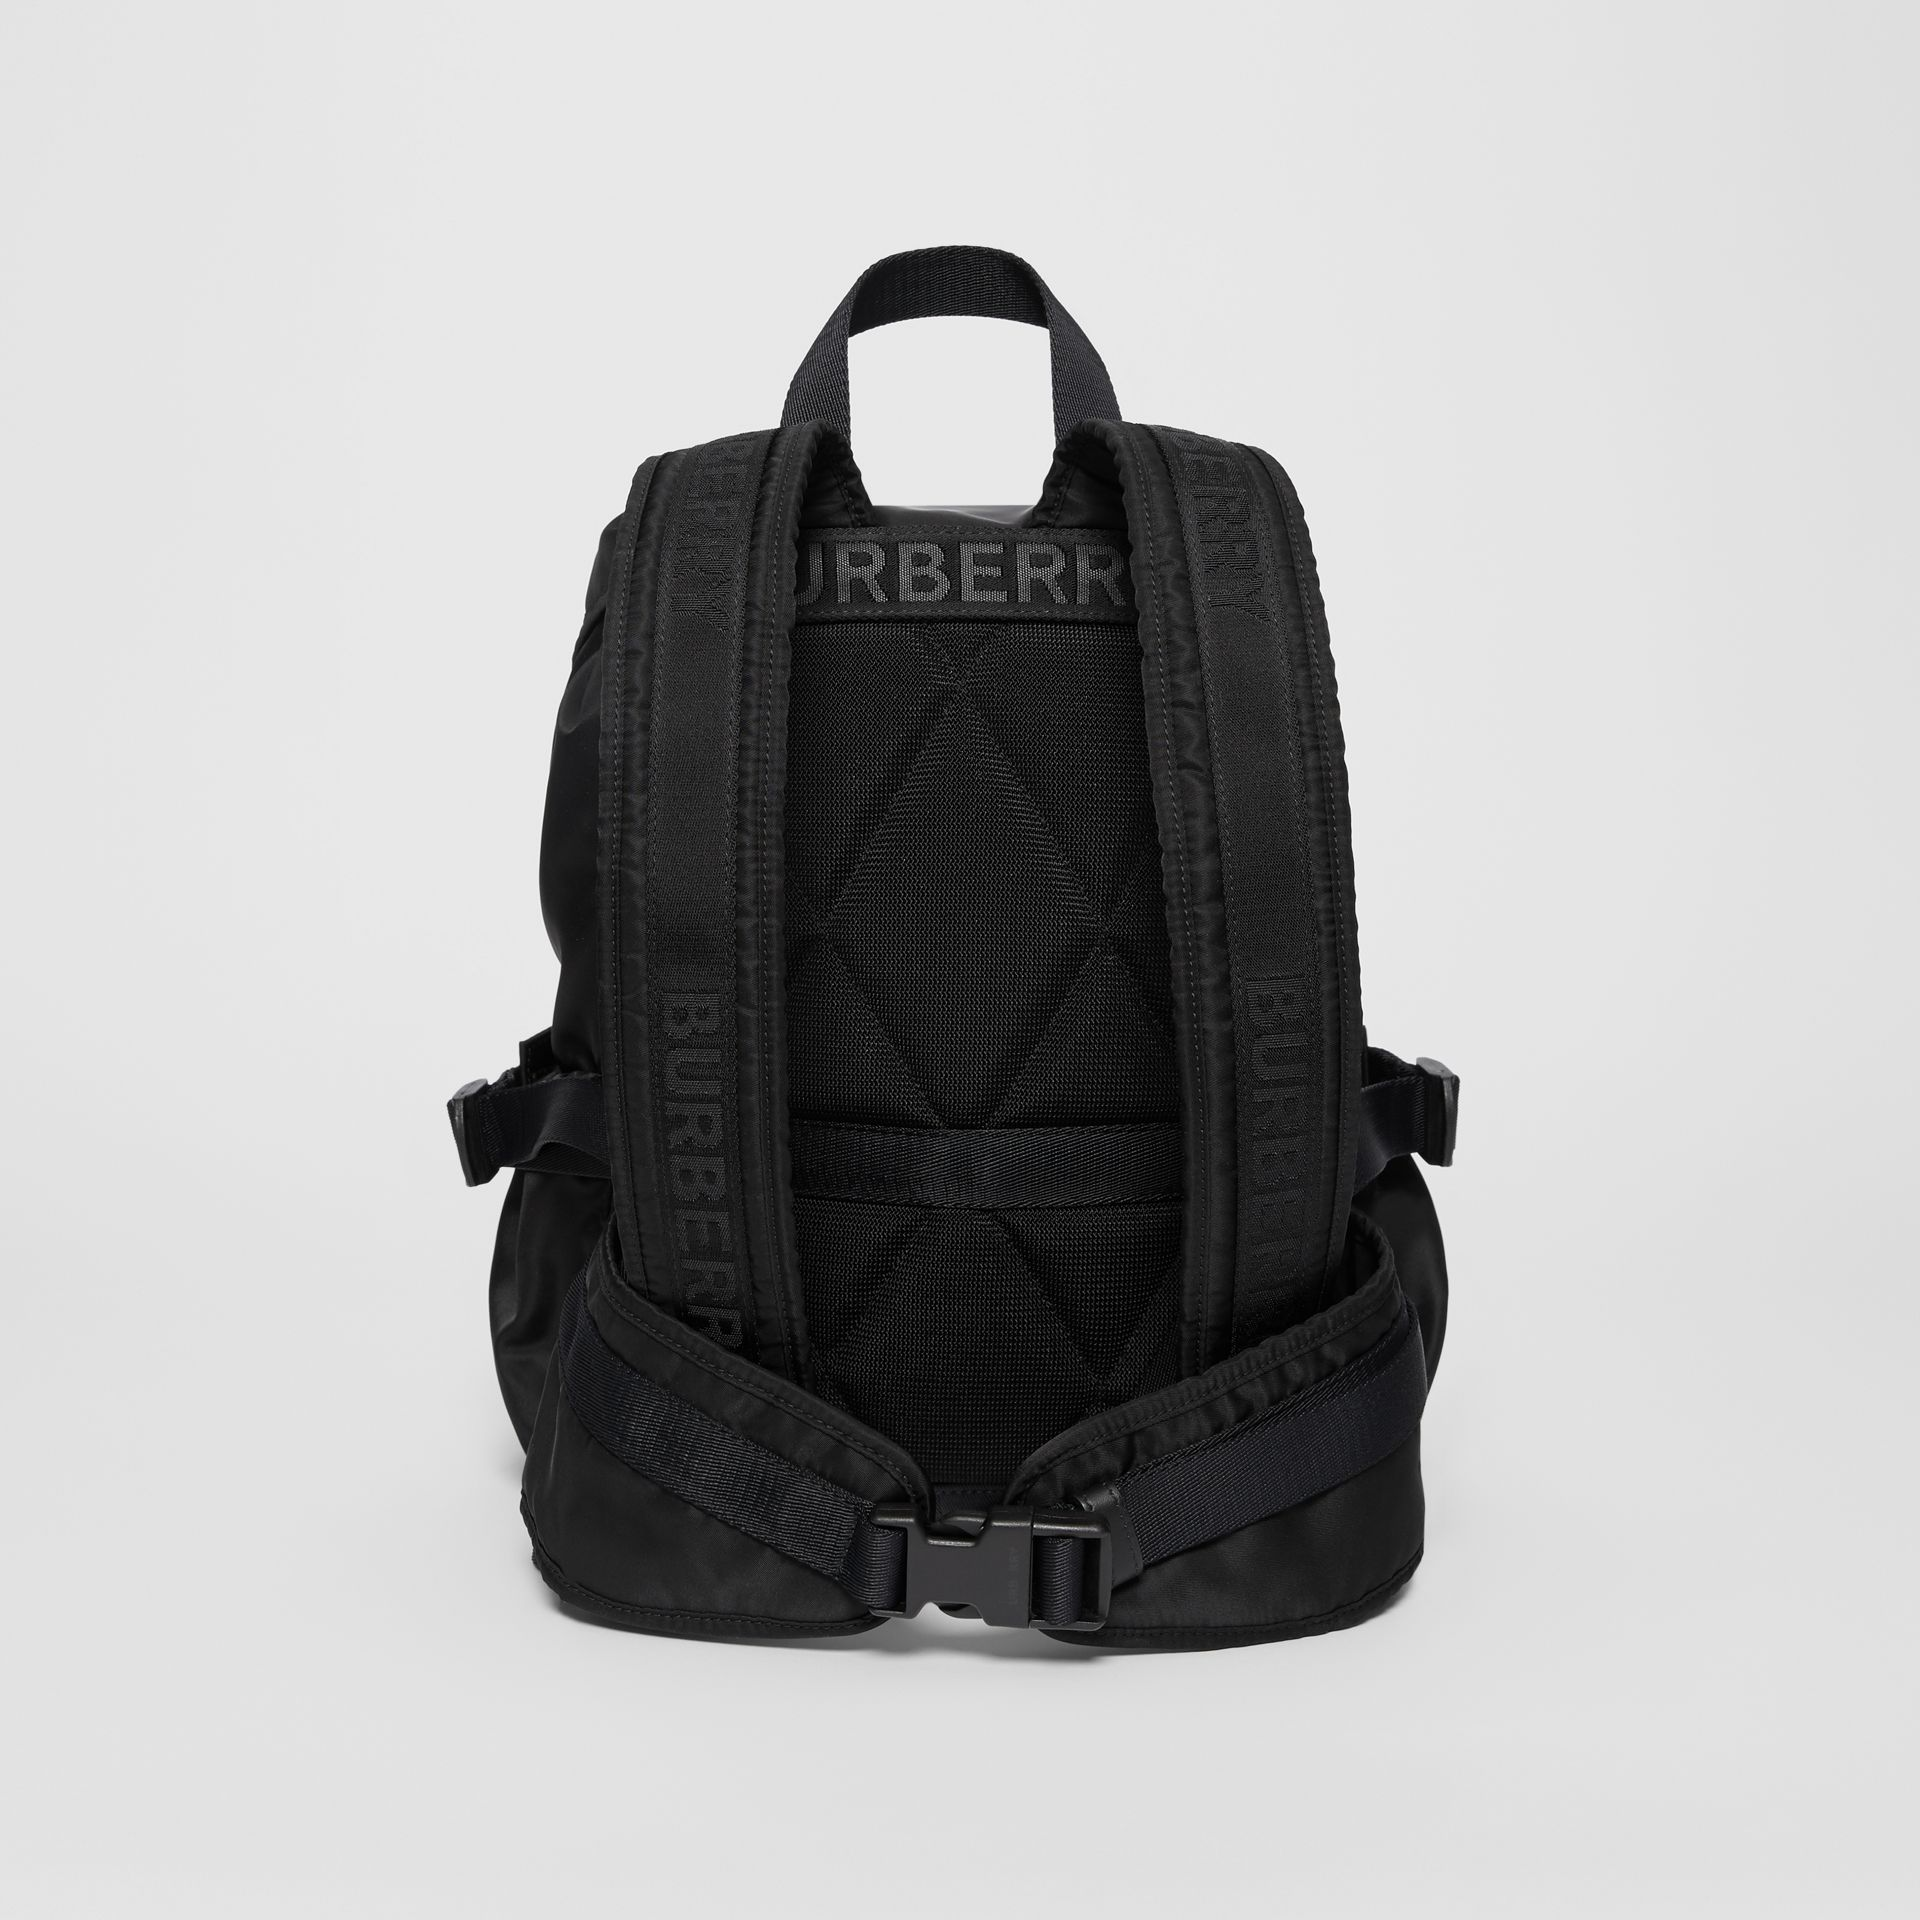 Small Logo Print Nylon Backpack in Black - Women | Burberry - gallery image 7